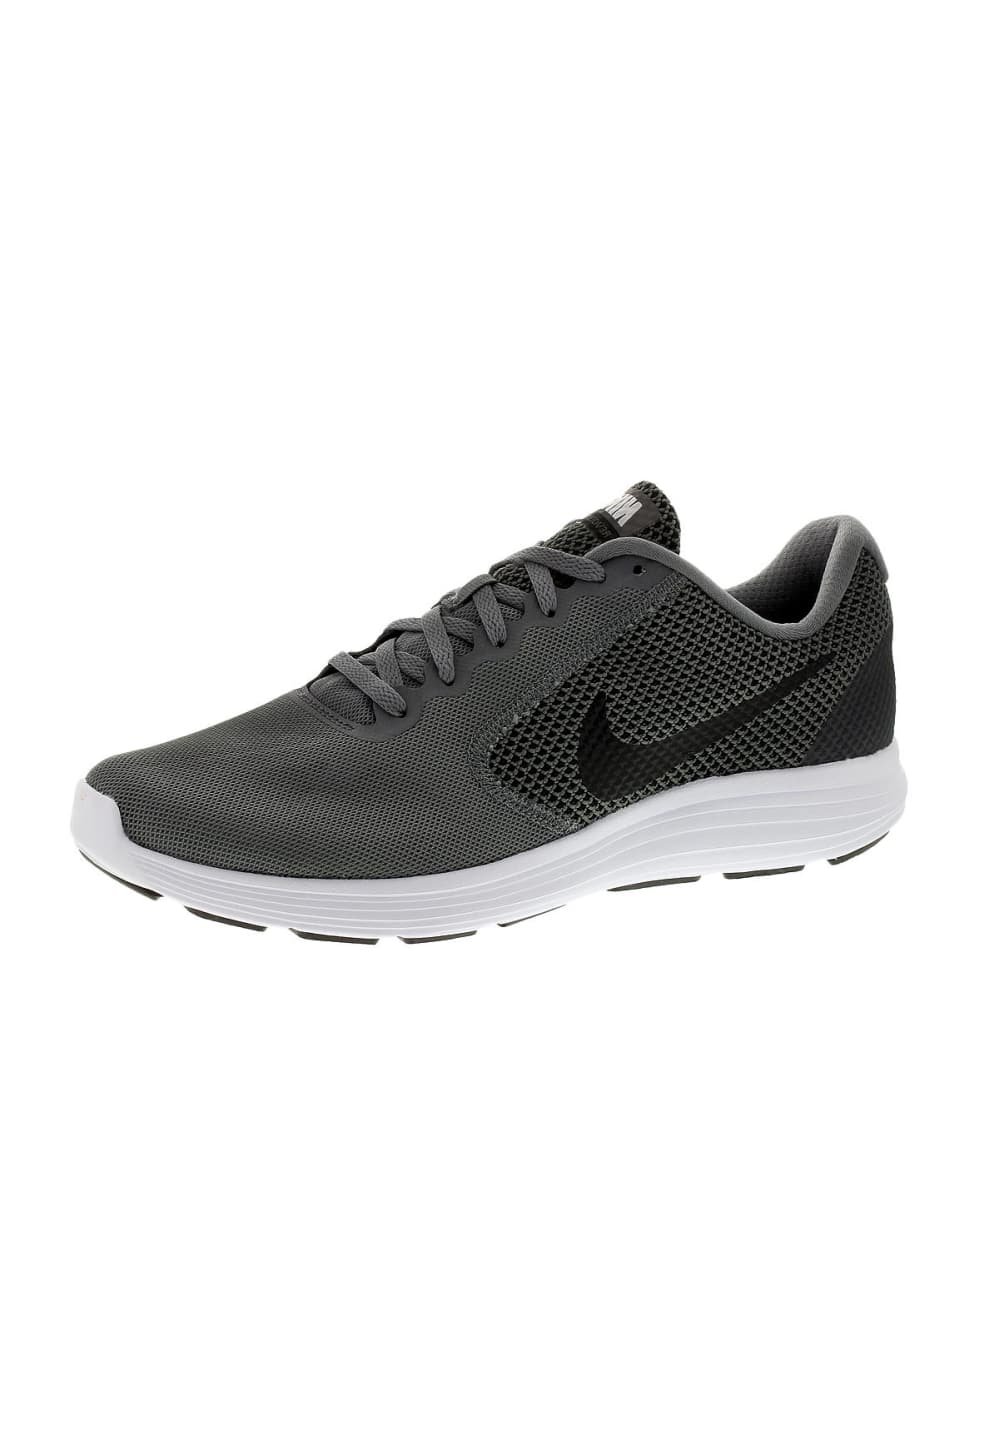 quality design ed0e6 5d40c Nike Revolution 3 - Running shoes for Men - Grey